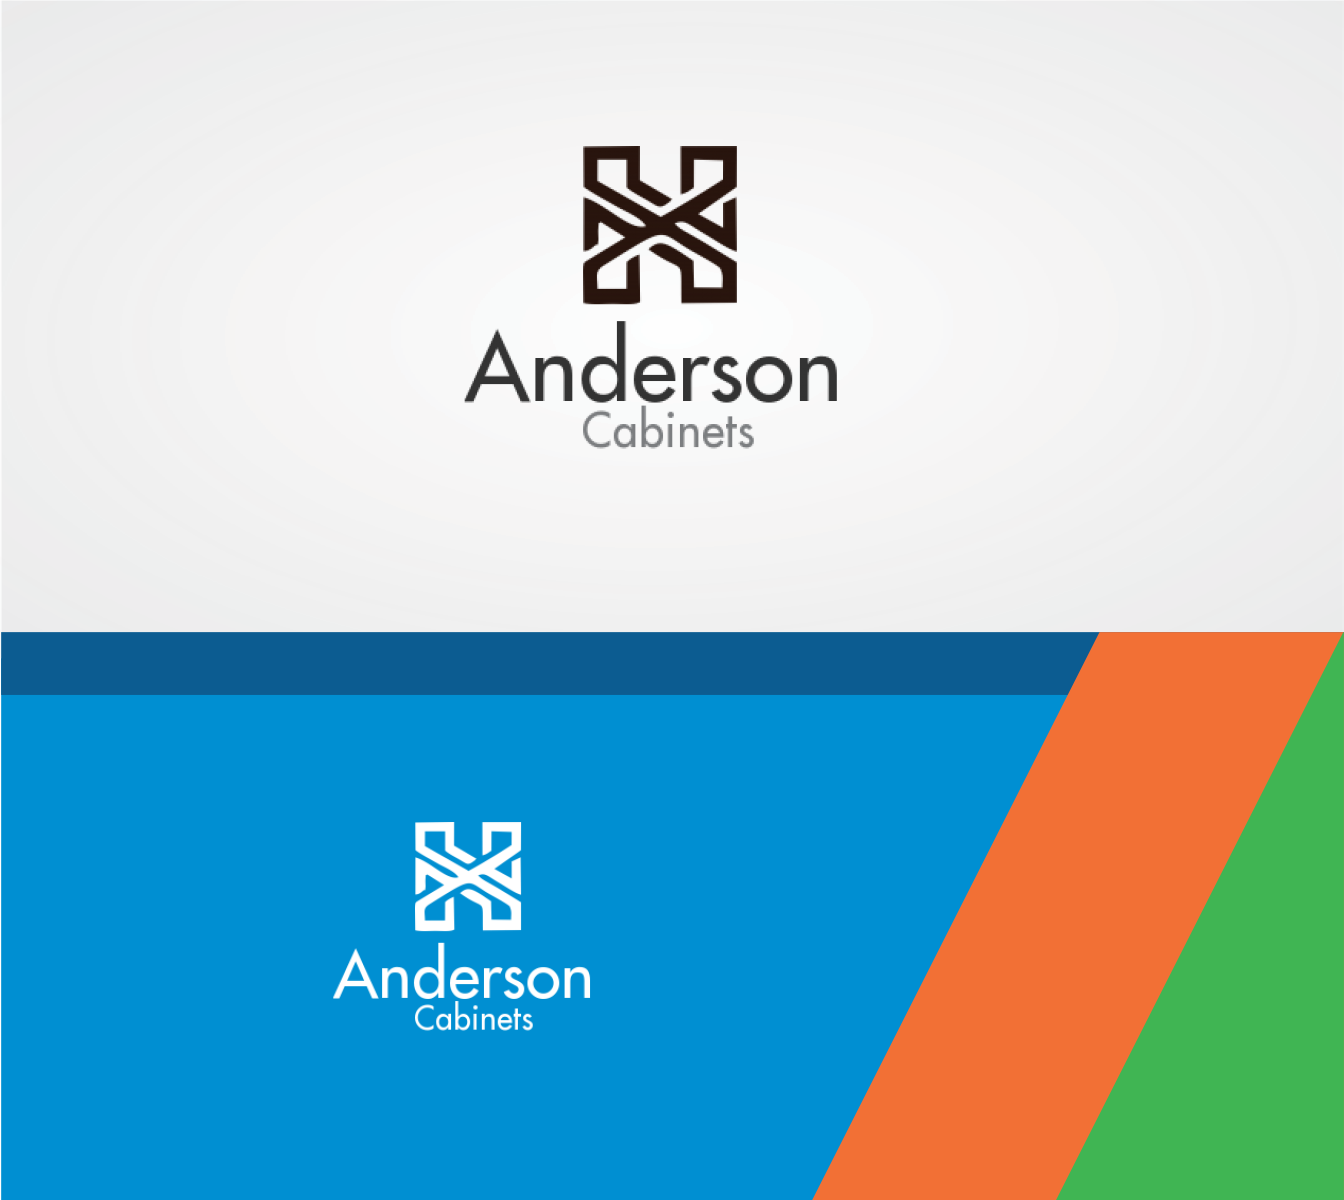 Logo Design By PaulyAndre For Anderson Cabinets   Design #17067195